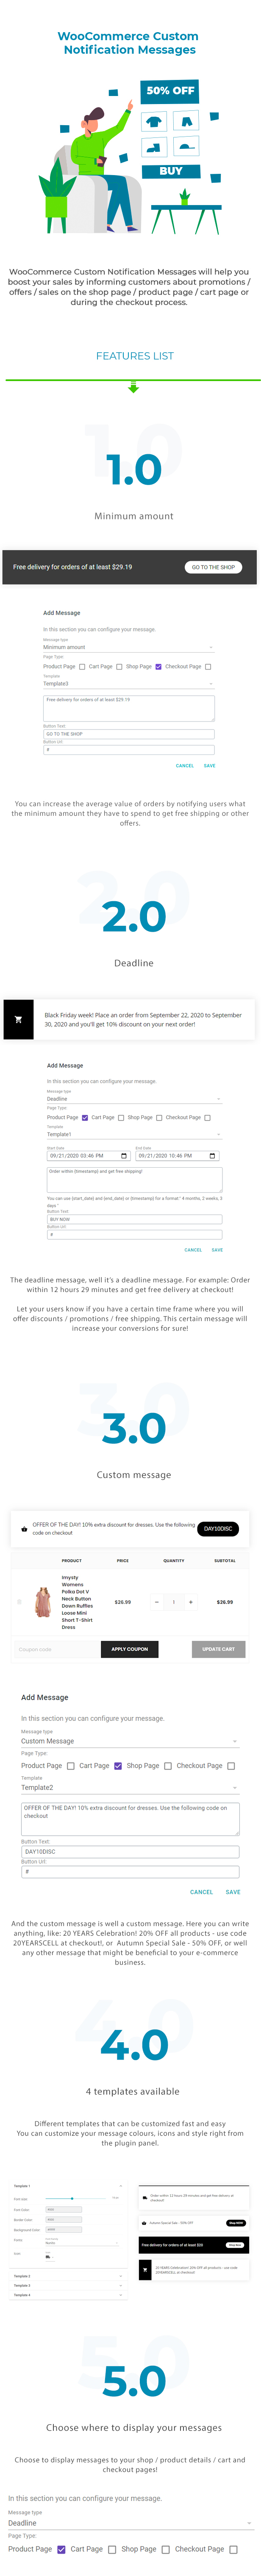 WooCommerce Custom Notification Messages for Shop / Products / Cart / Checkout Pages - 1